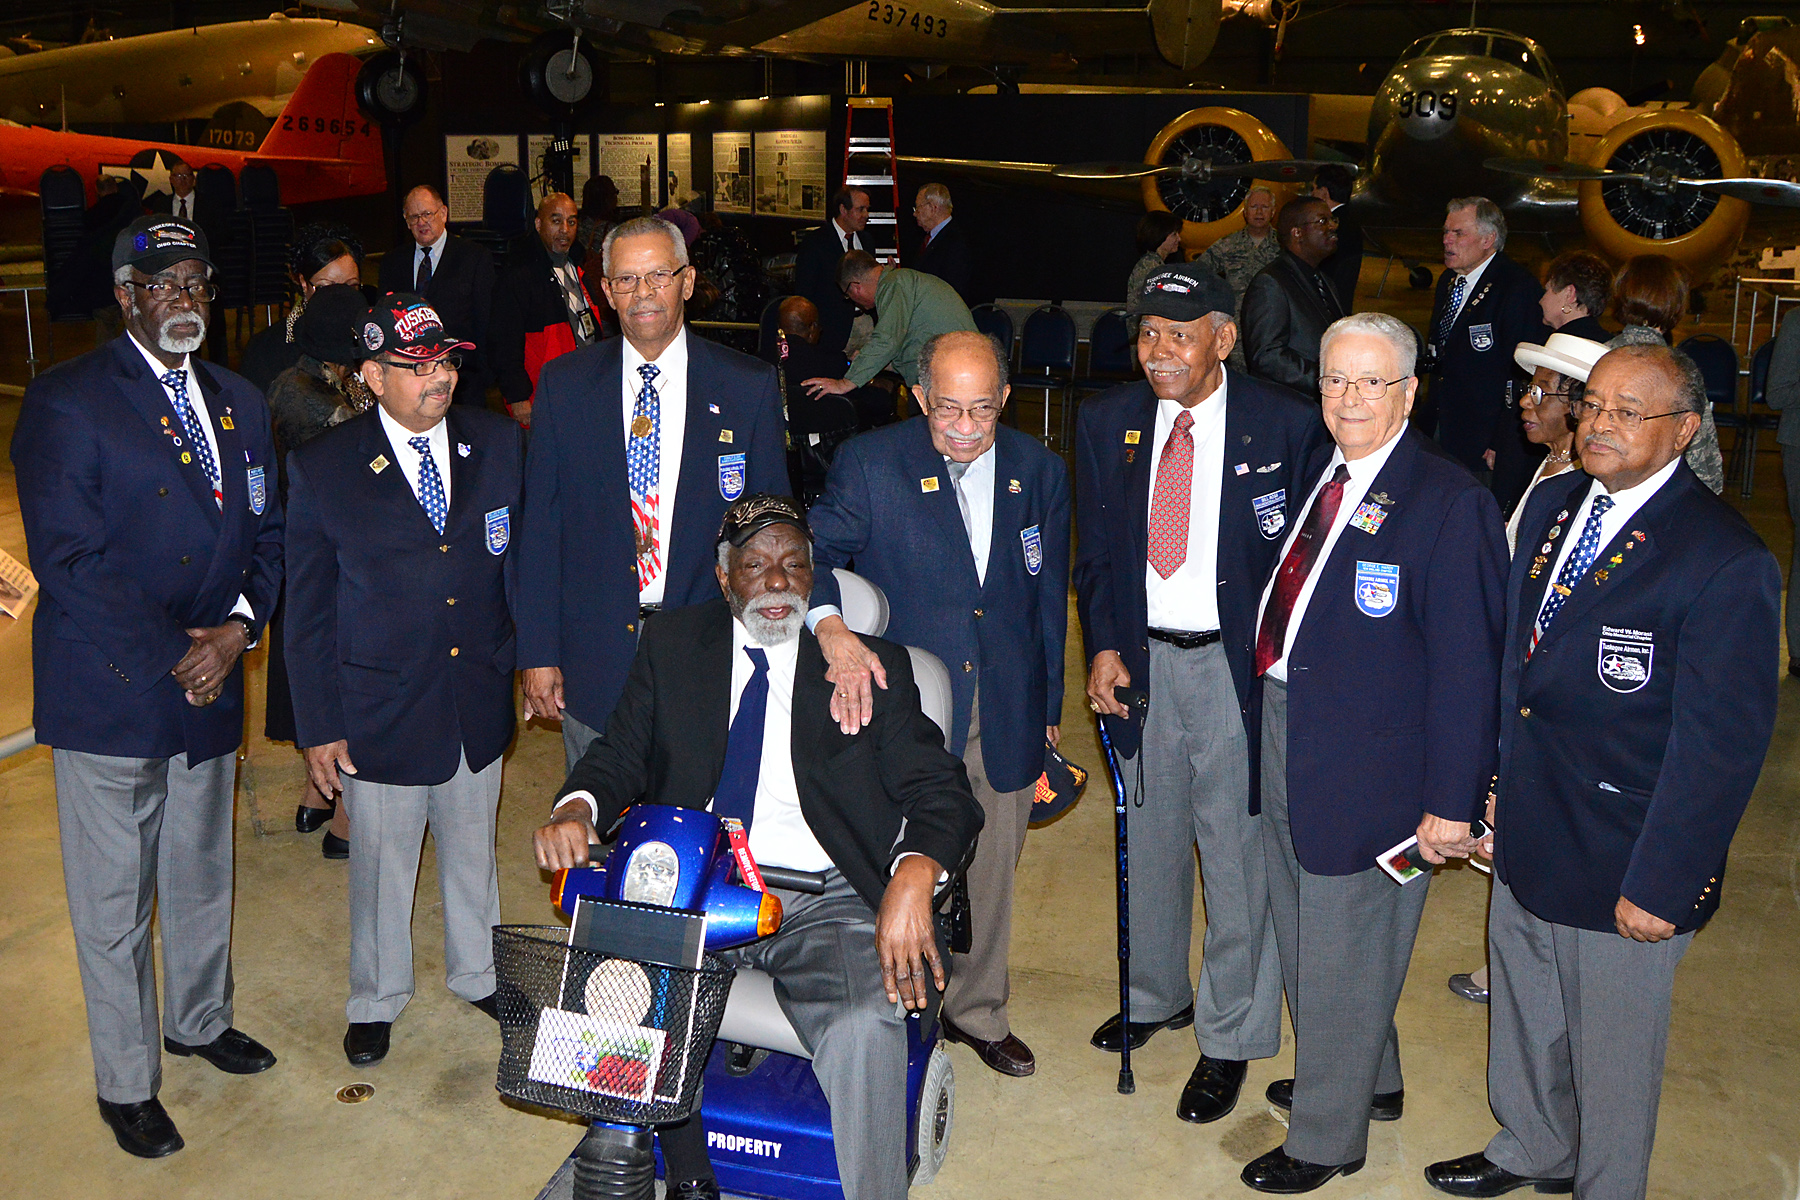 Tuskegee Airmen and Honorary Tuskegee Airmen gathered for photographs at the expanded Tuskegee Airmen exhibit opening in the WWII Gallery at the National Museum of the U.S. Air Force on Feb. 10, 2015. (U.S. Air Force photo)